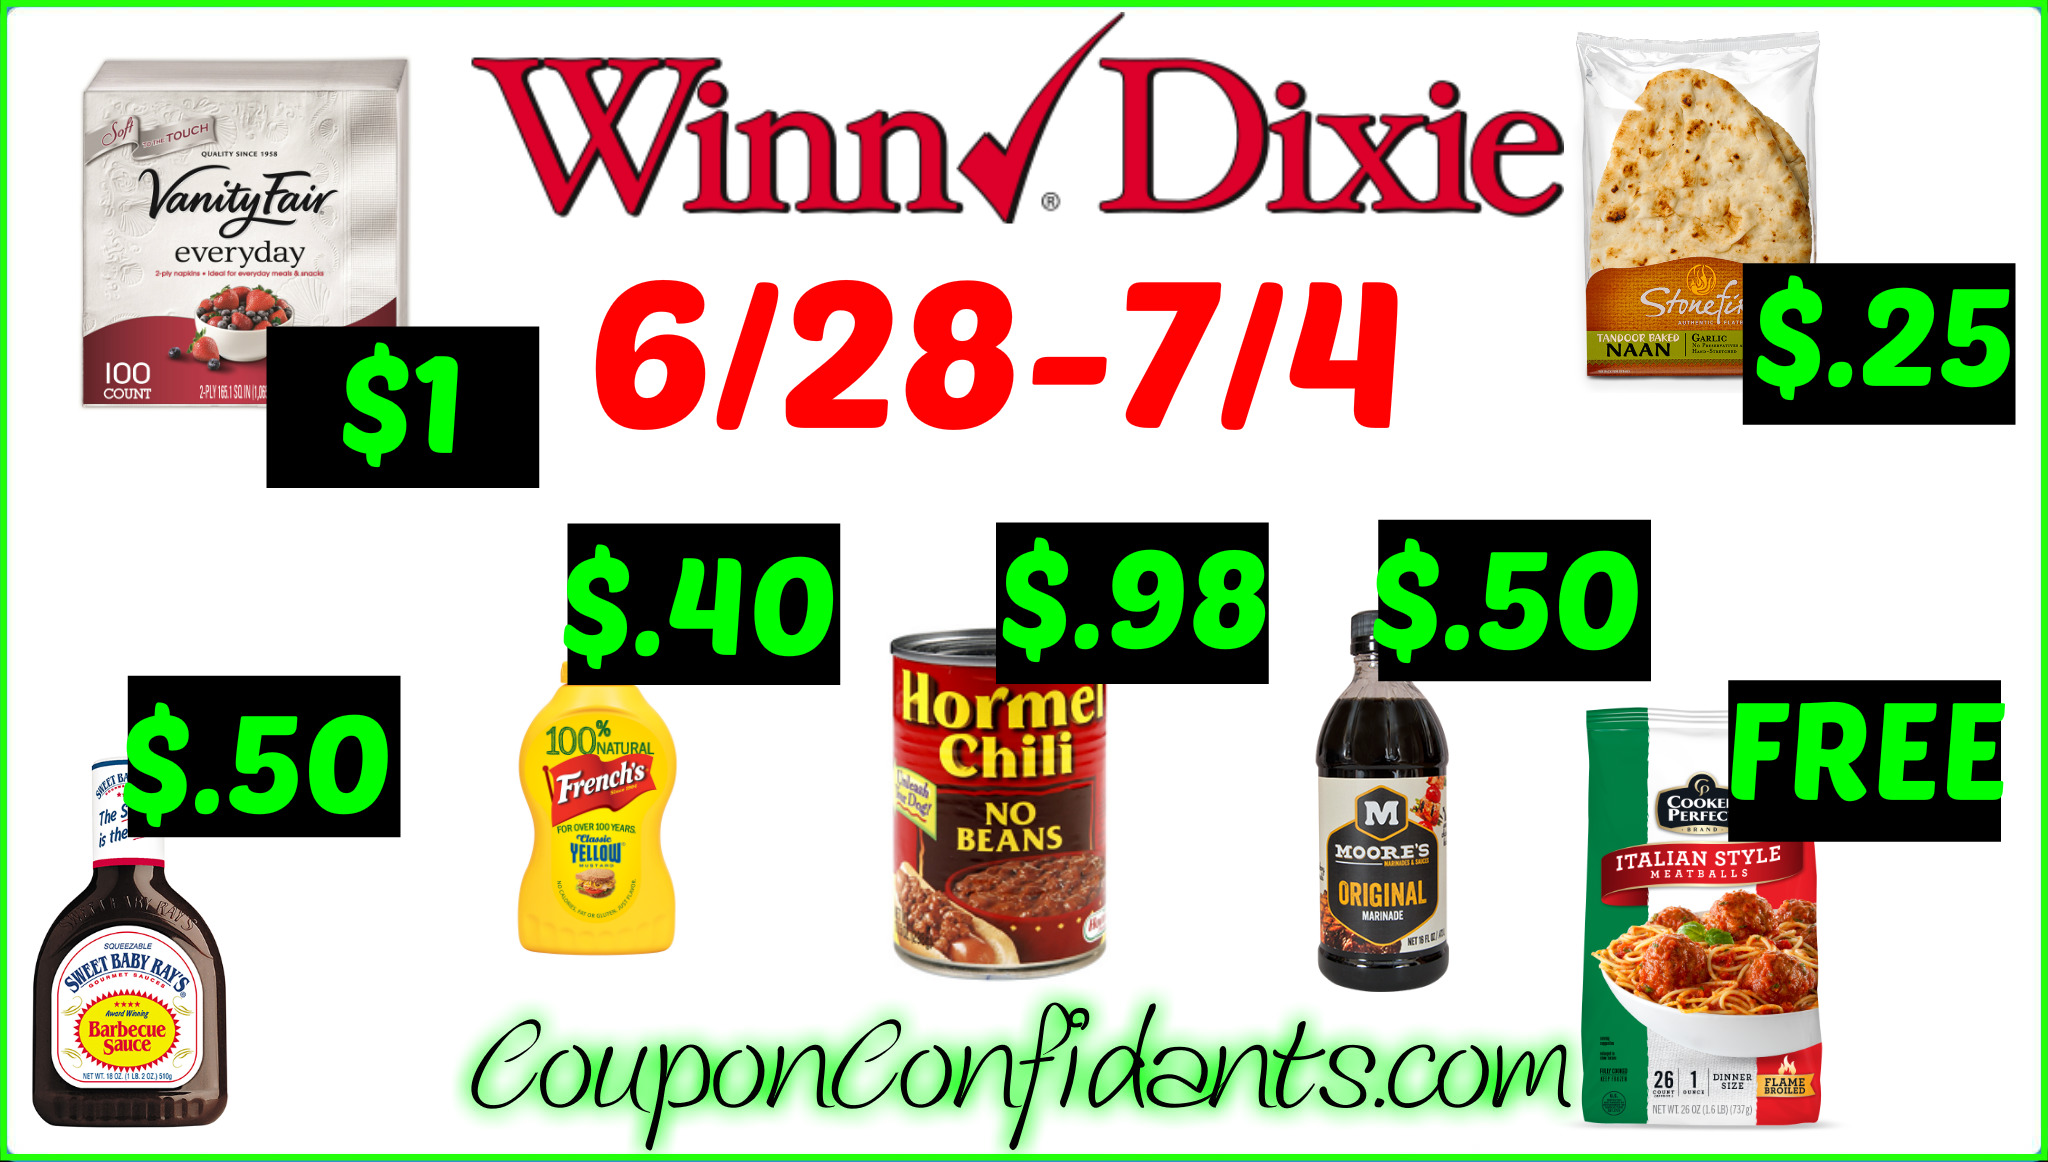 Founded in , Winn-Dixie grocery stores proudly serve the local supermarket needs of Alabama, Florida, Georgia, Louisiana and Mississippi. Enjoy fresh produce, finest cuts of meats, award-winning bakery, a full-service pharmacy, along with all of your favorite Winn-Dixie Brands.